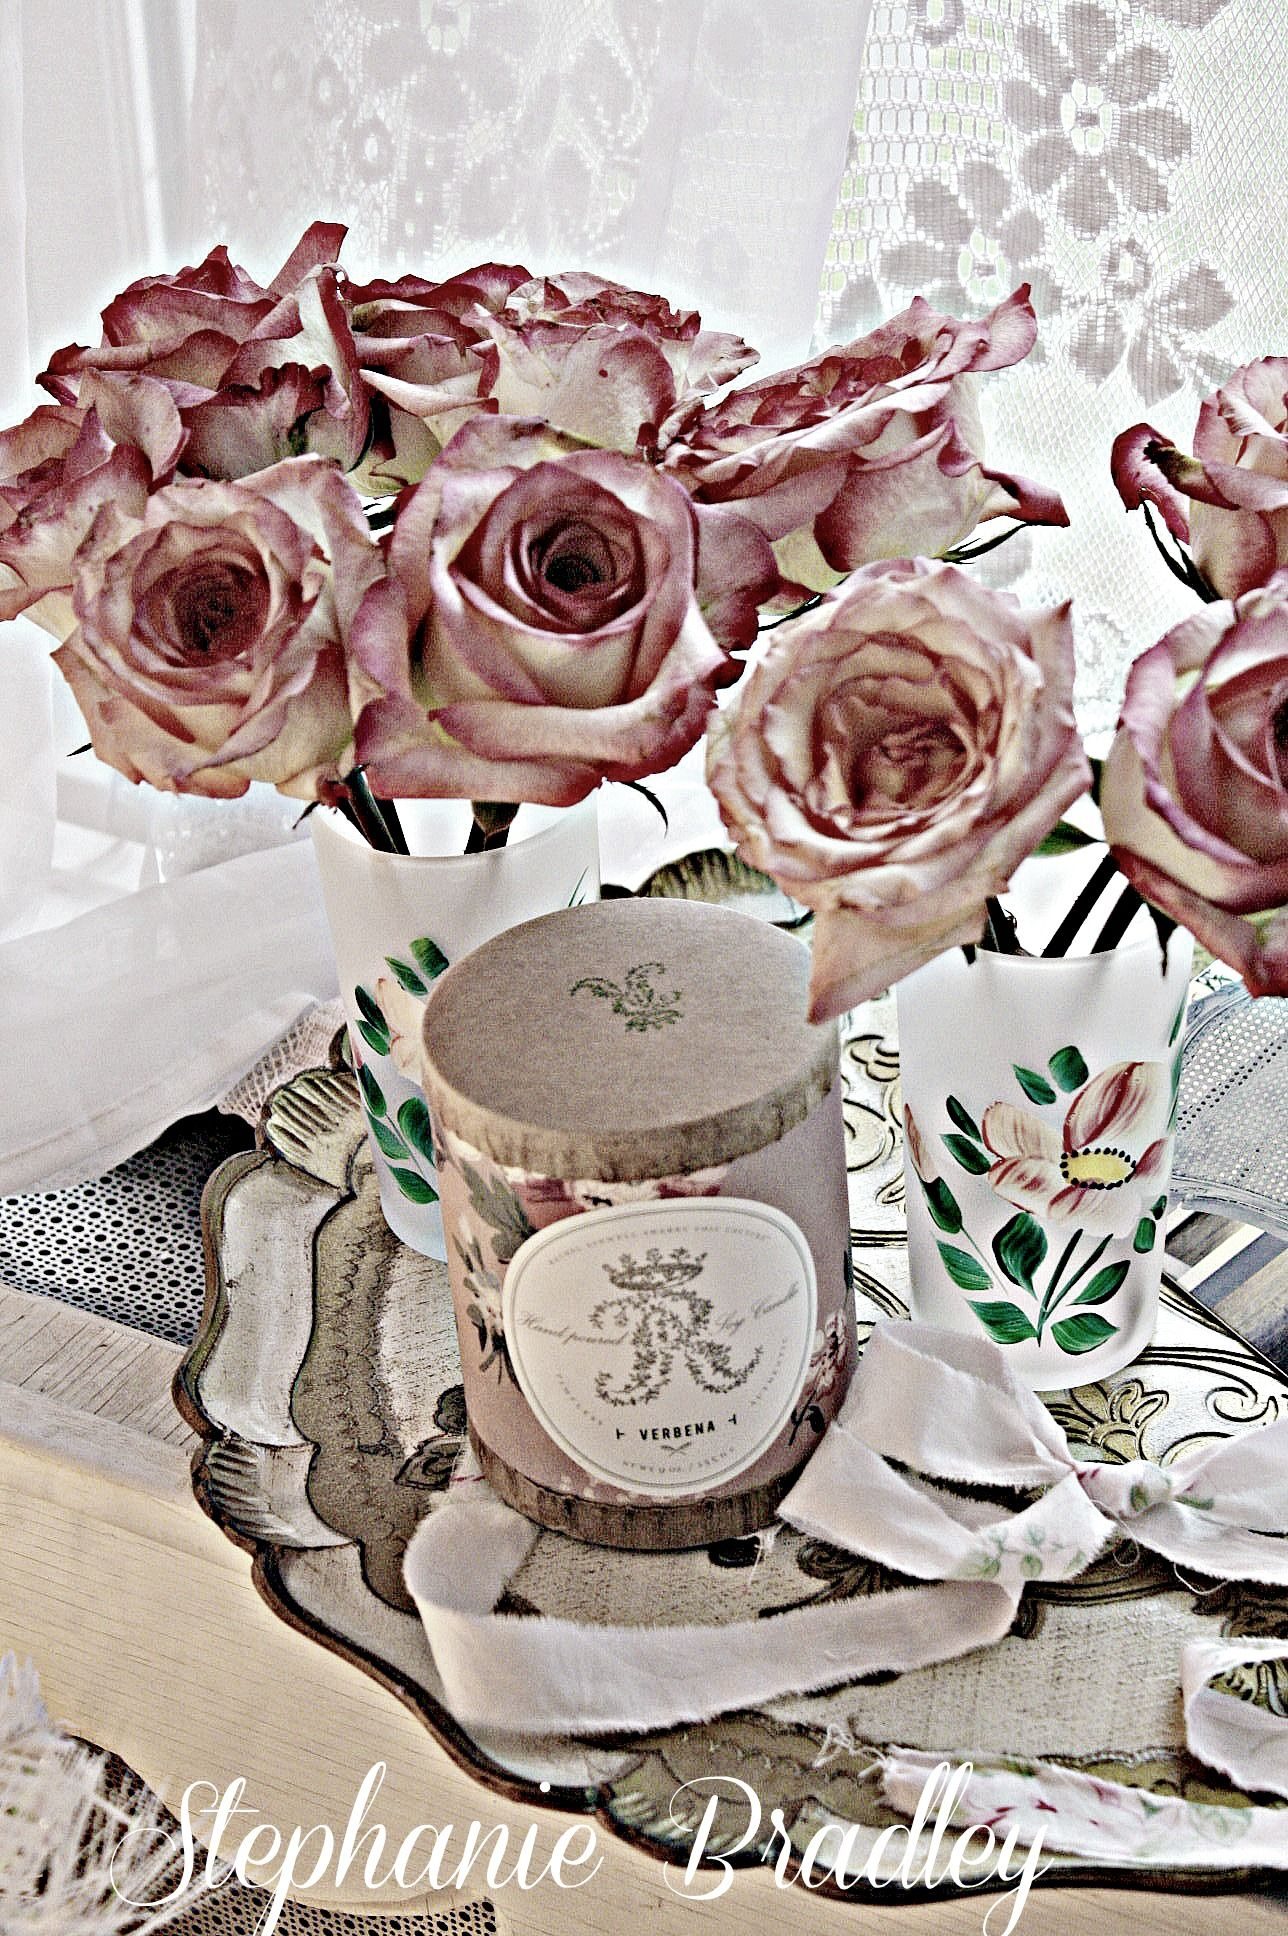 Roses and my Rachel Ashwell Verbena candle.